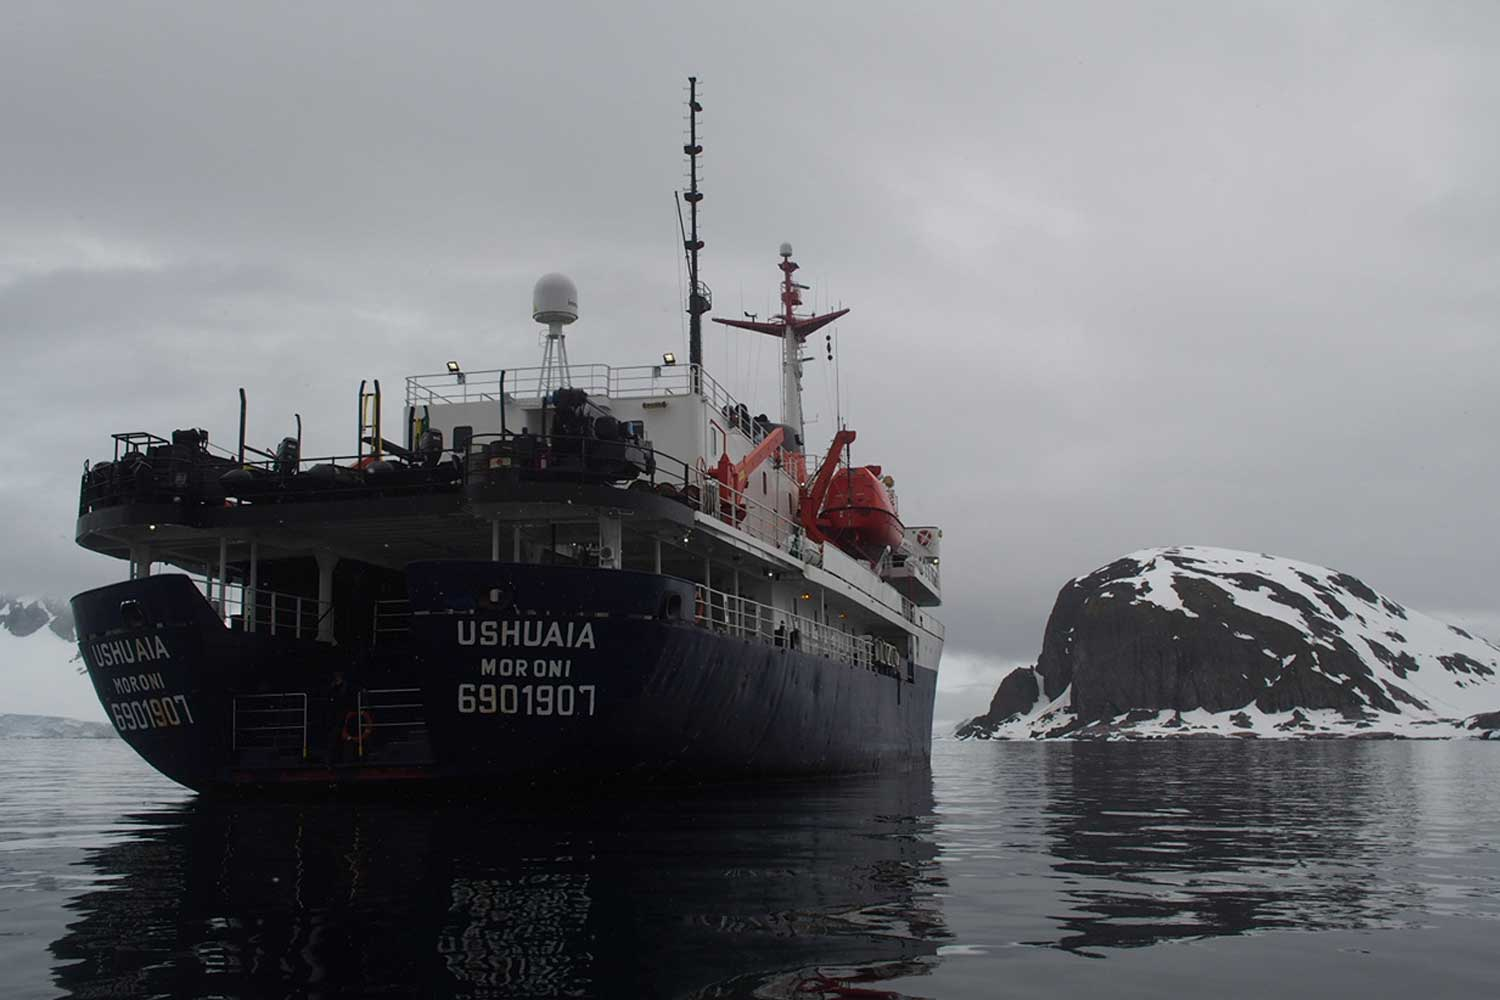 The MV Ushuaia